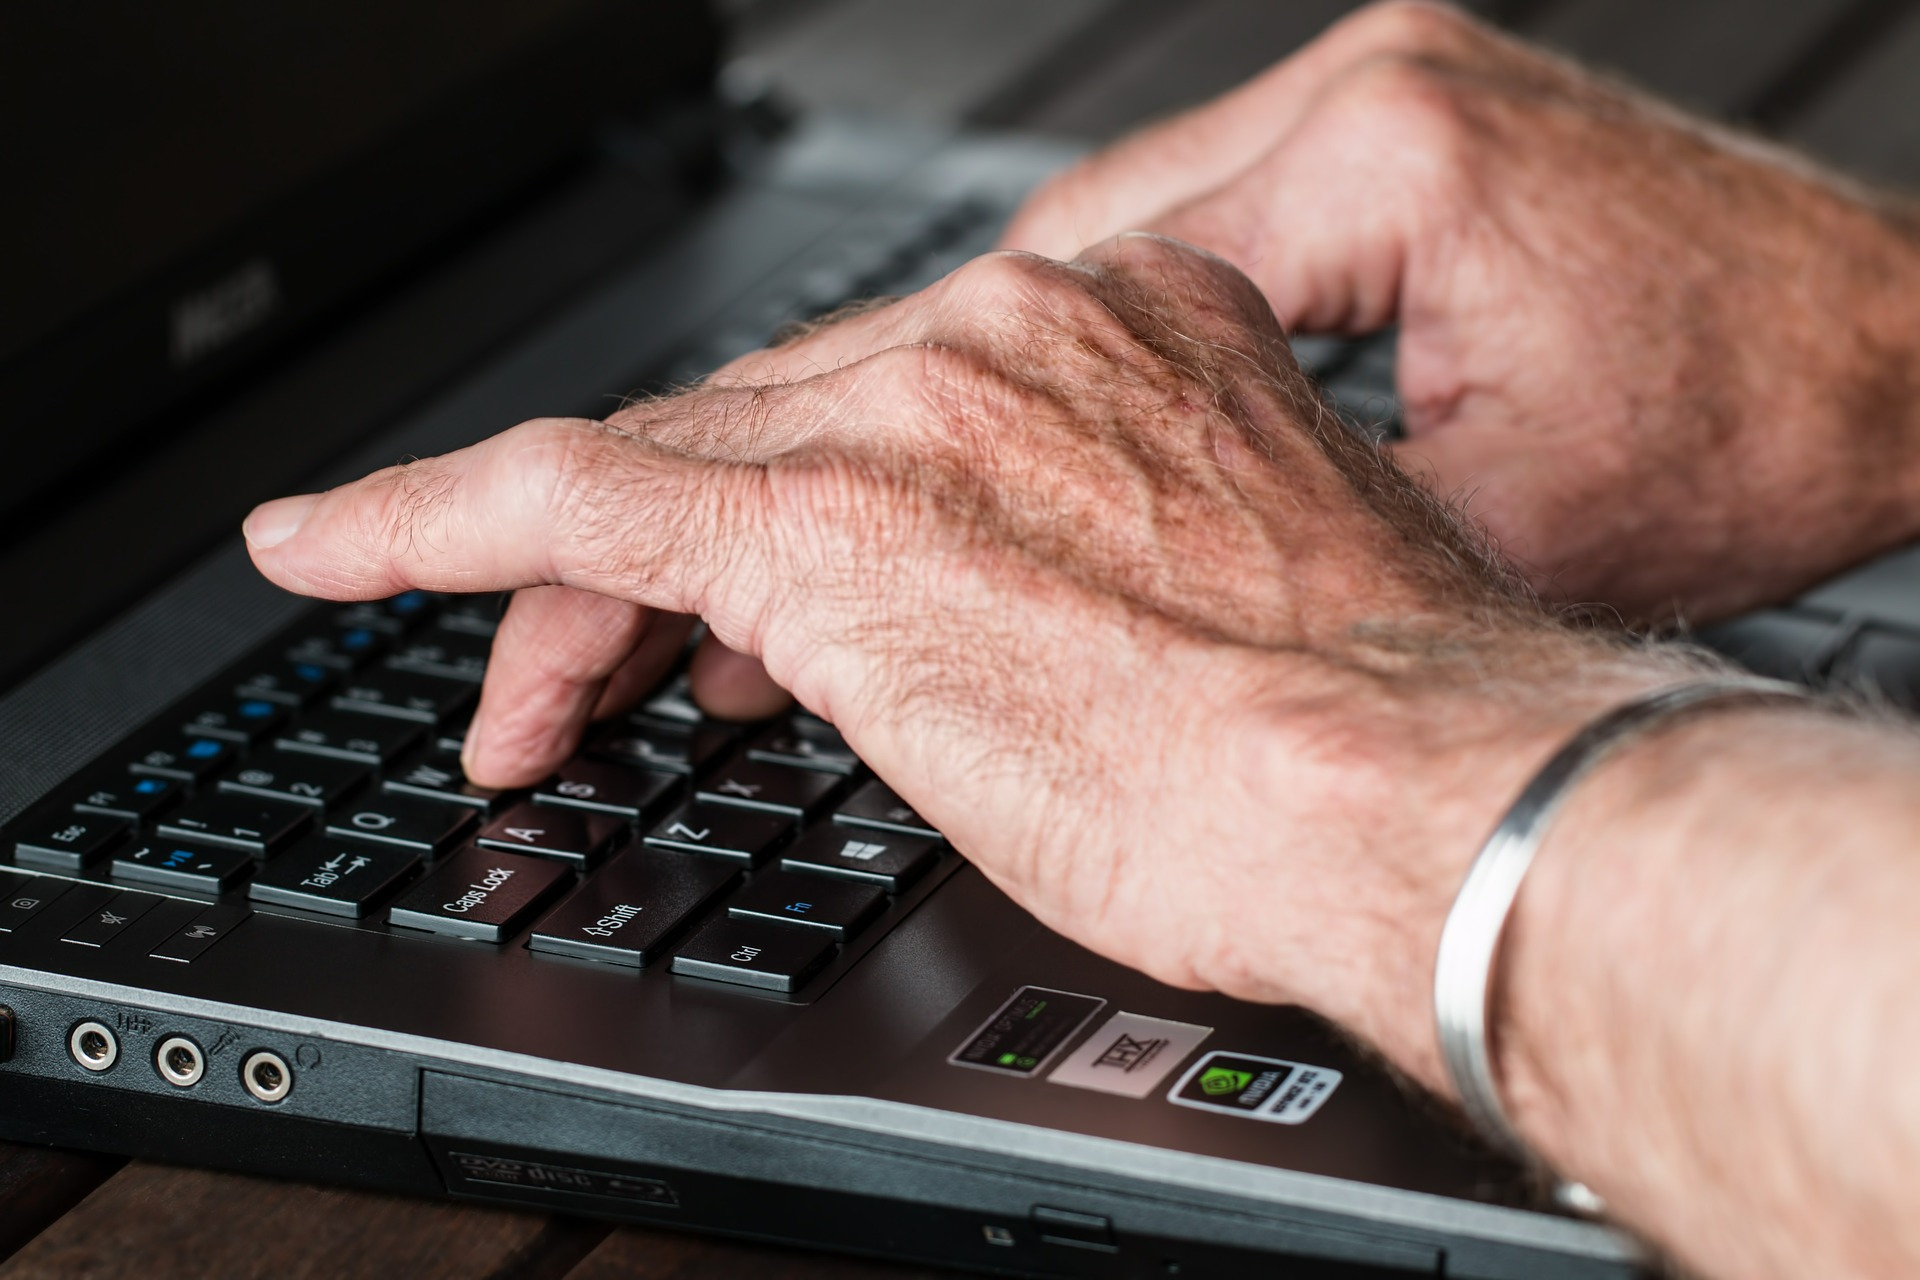 older hands typing on a computer keyboard